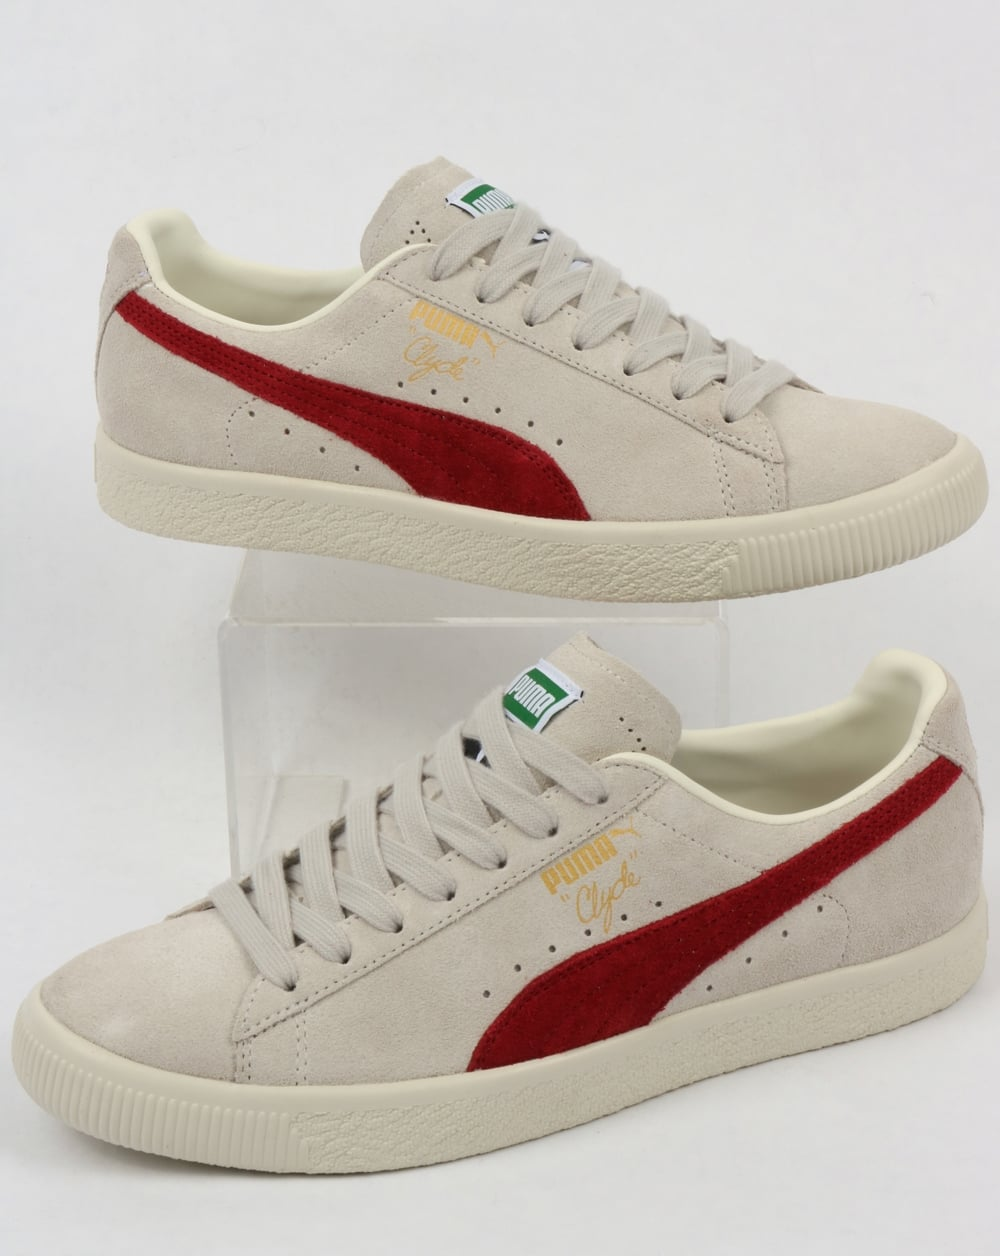 8041048f5ea Puma Clyde Archive Trainers Grey/Red Dahlia,shoes,suede,retro,80s